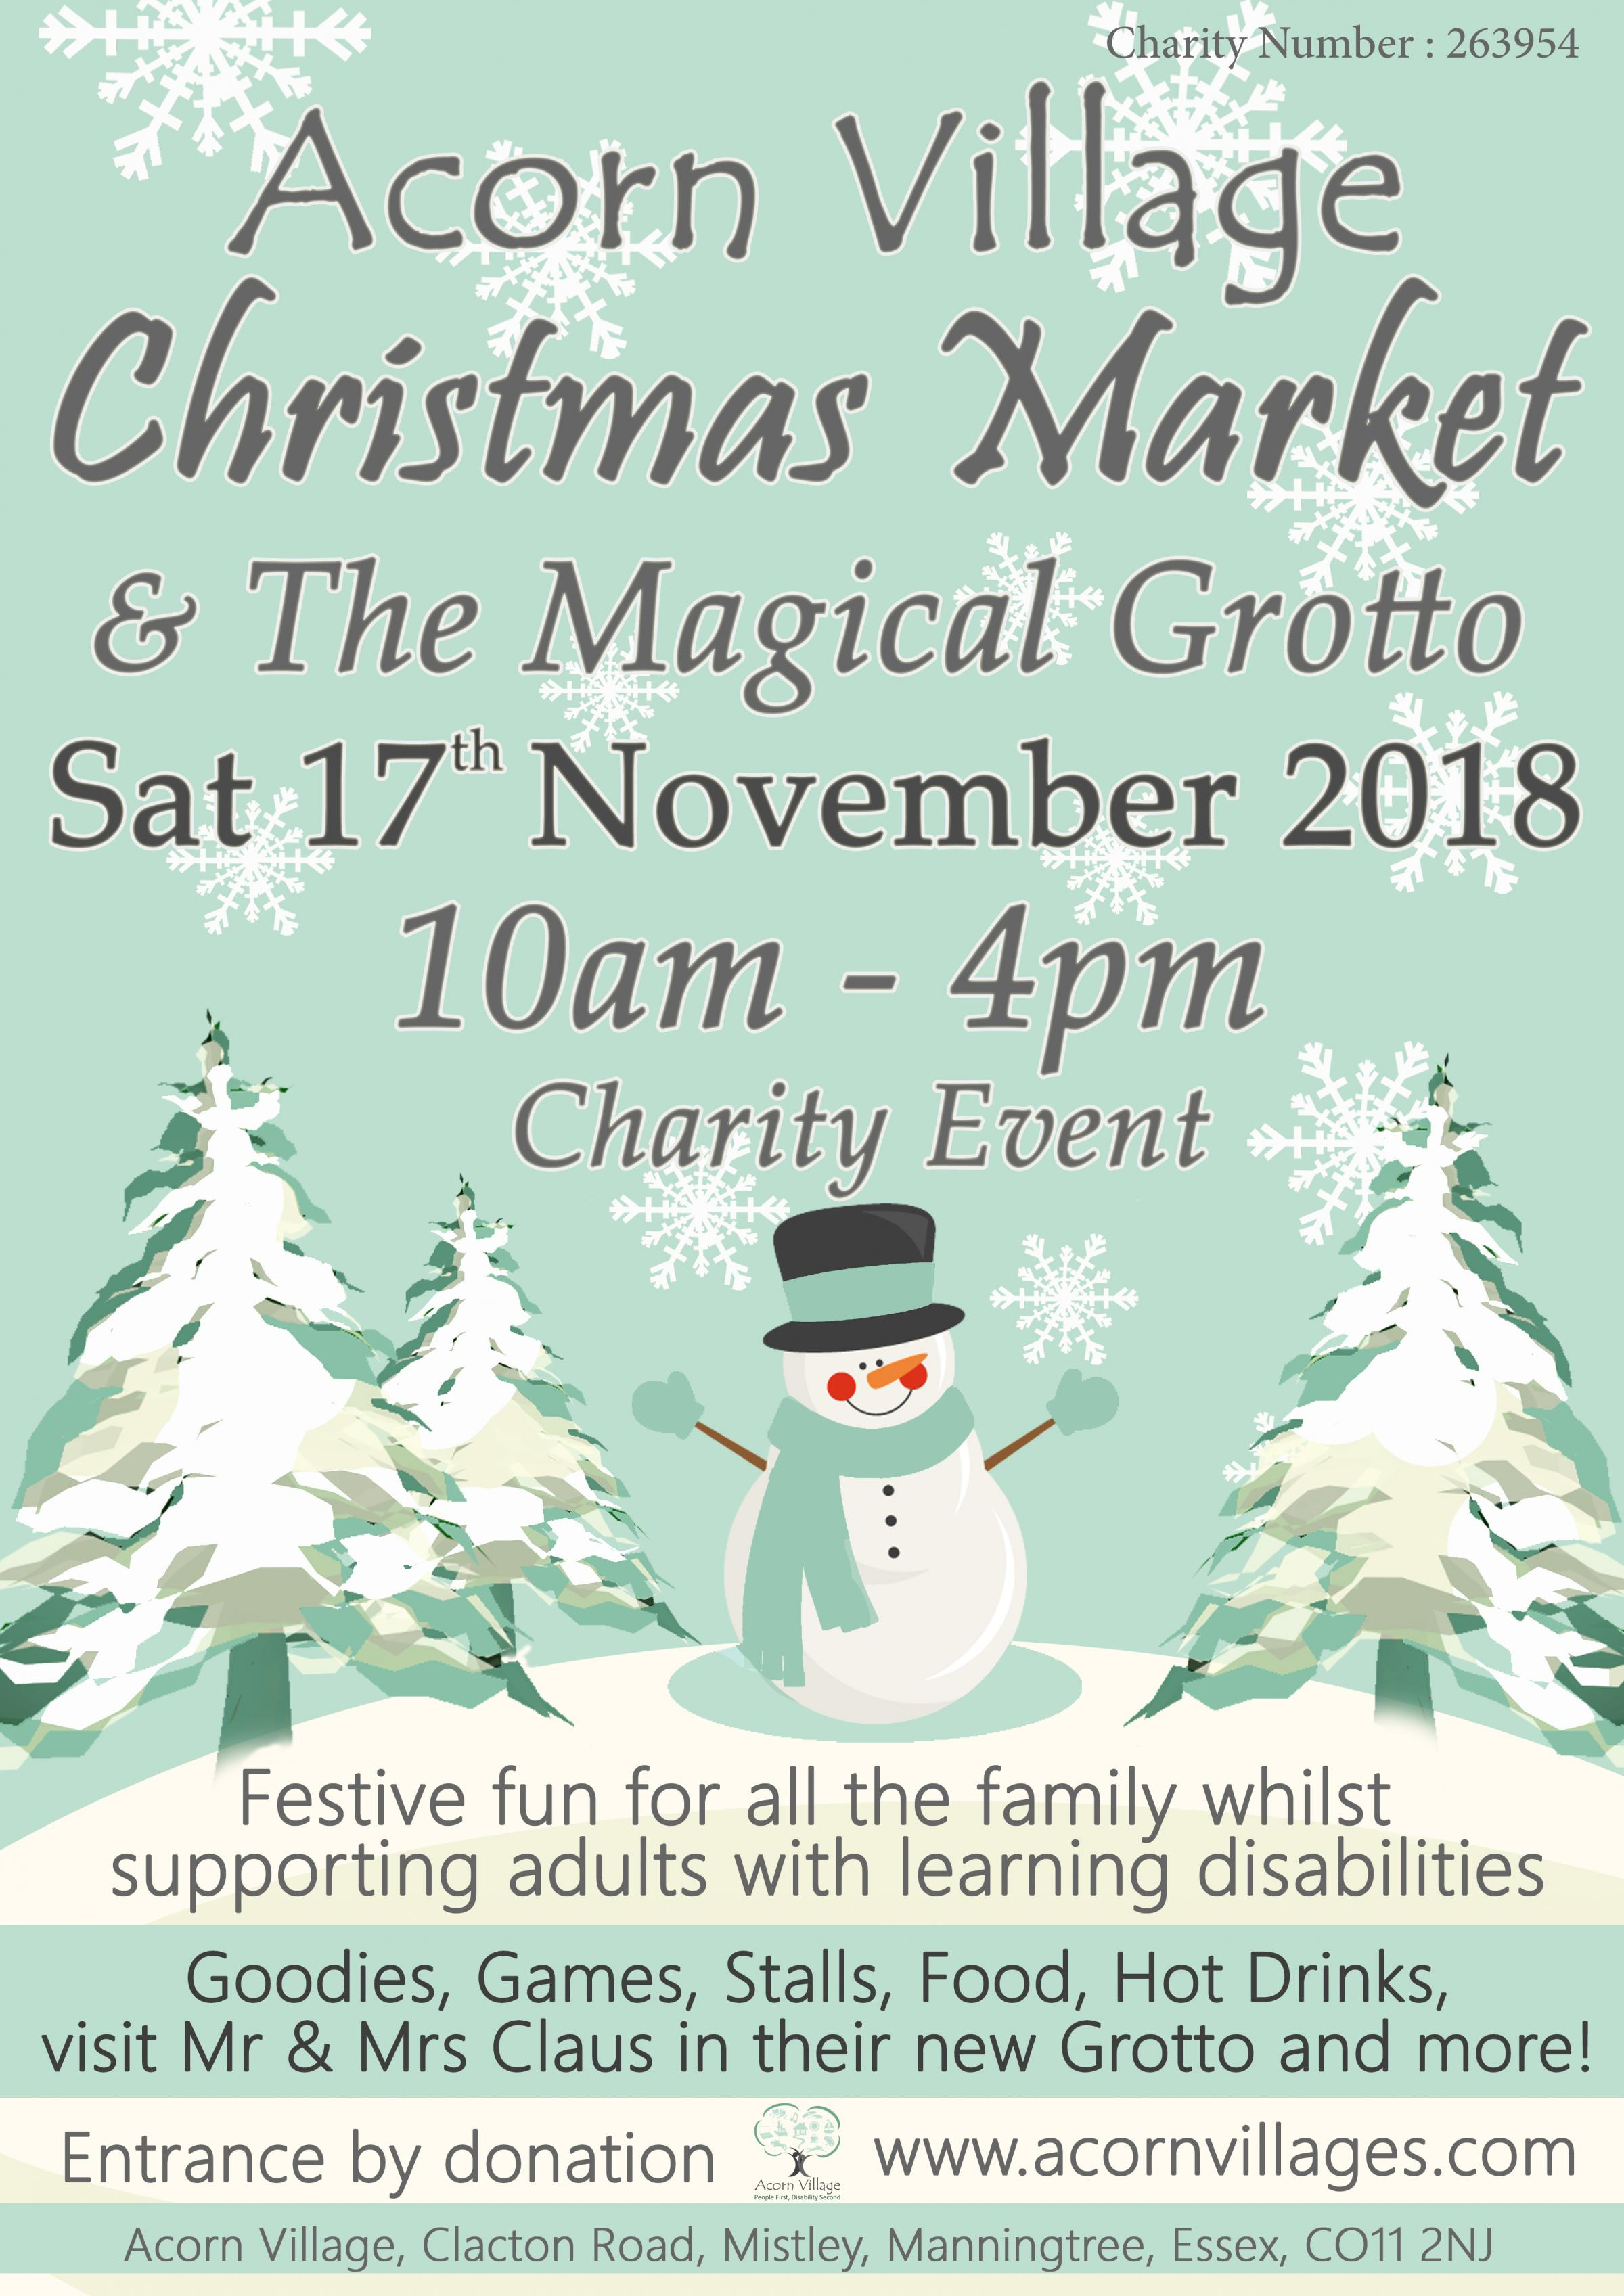 Charity Christmas Market & The Magical Grotto